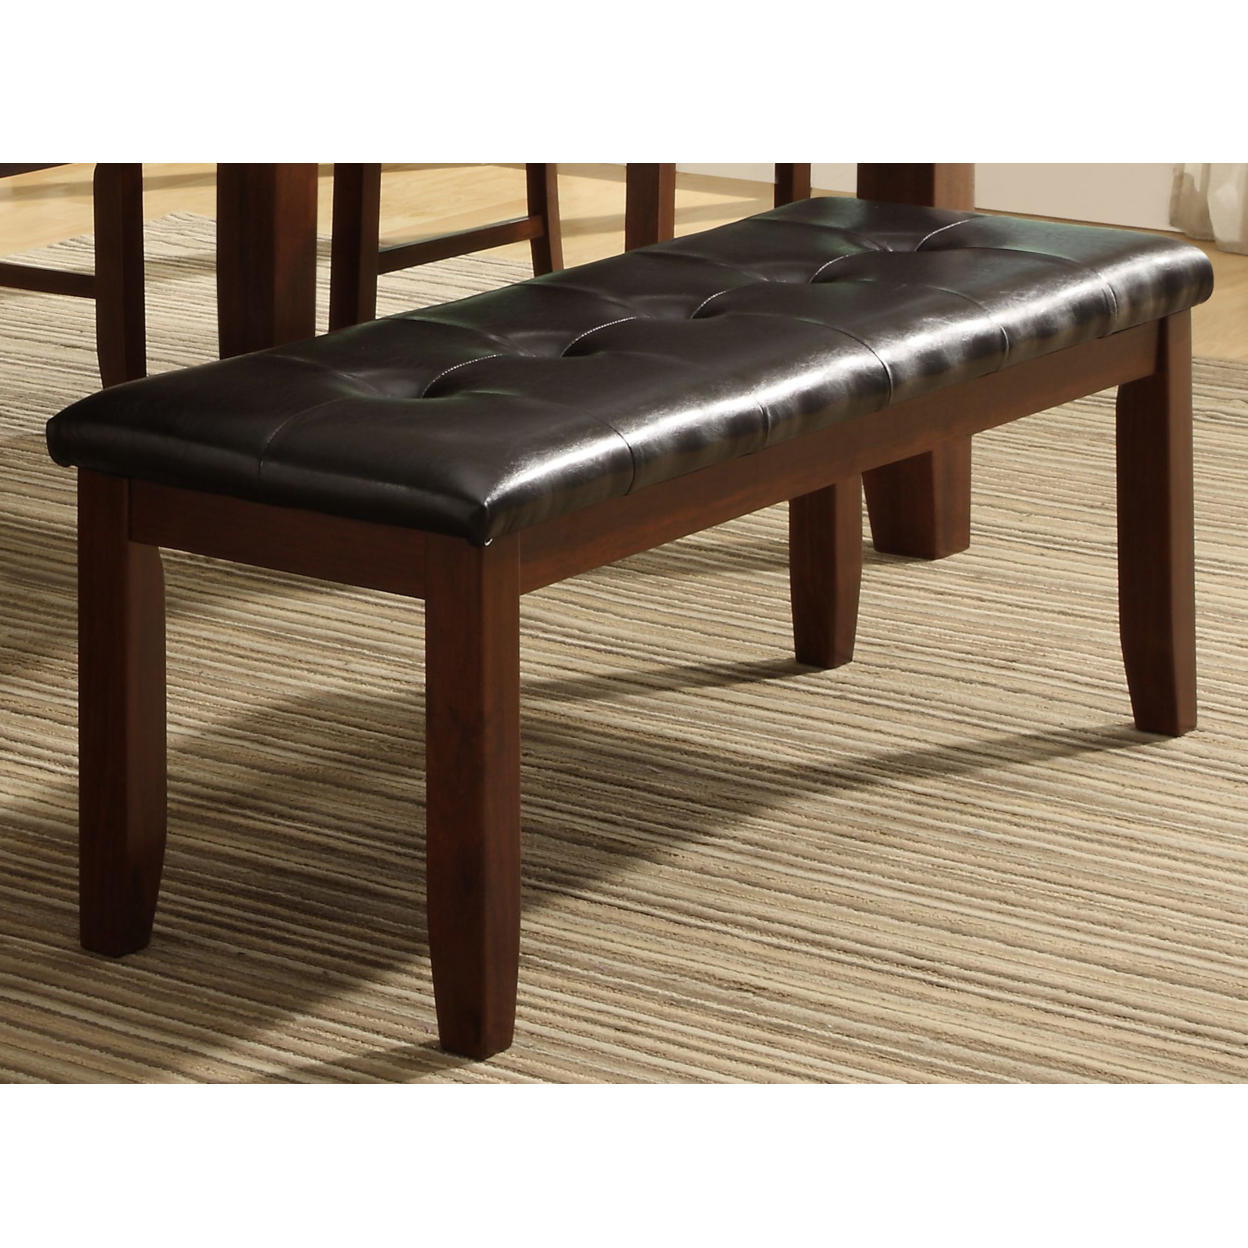 Us 147 11 Wood Based Leather Tufted Bench In Dark Brown In Living Room Chairs From Furniture On Aliexpress Com Alibaba Group